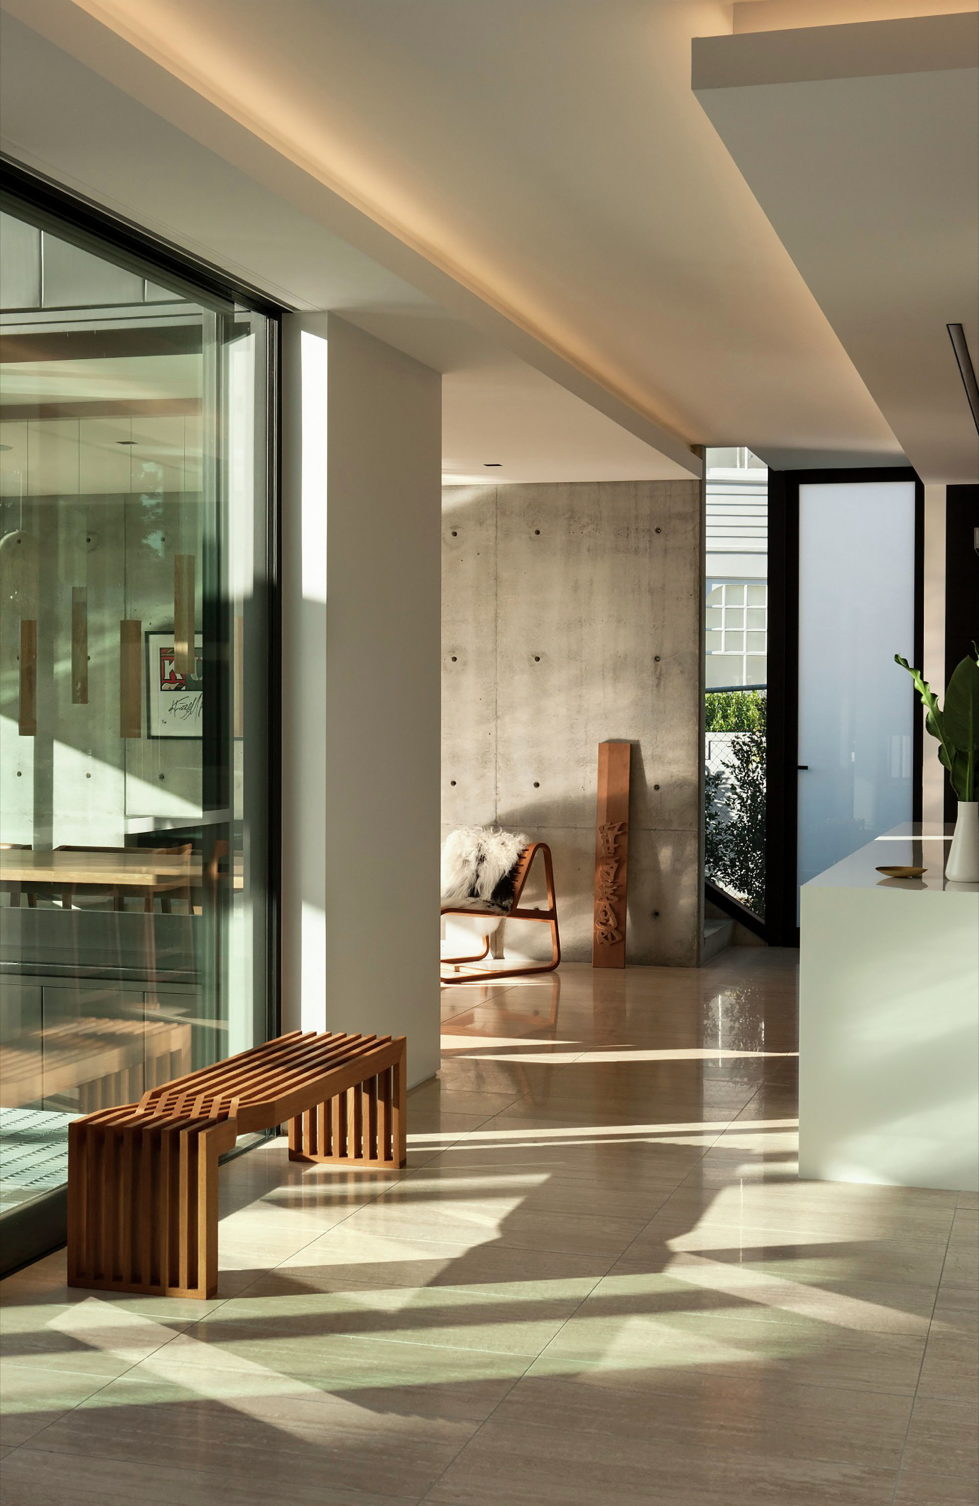 out-of-town-villa-in-new-zealand-upon-the-project-of-daniel-marshall-architects-studio-8